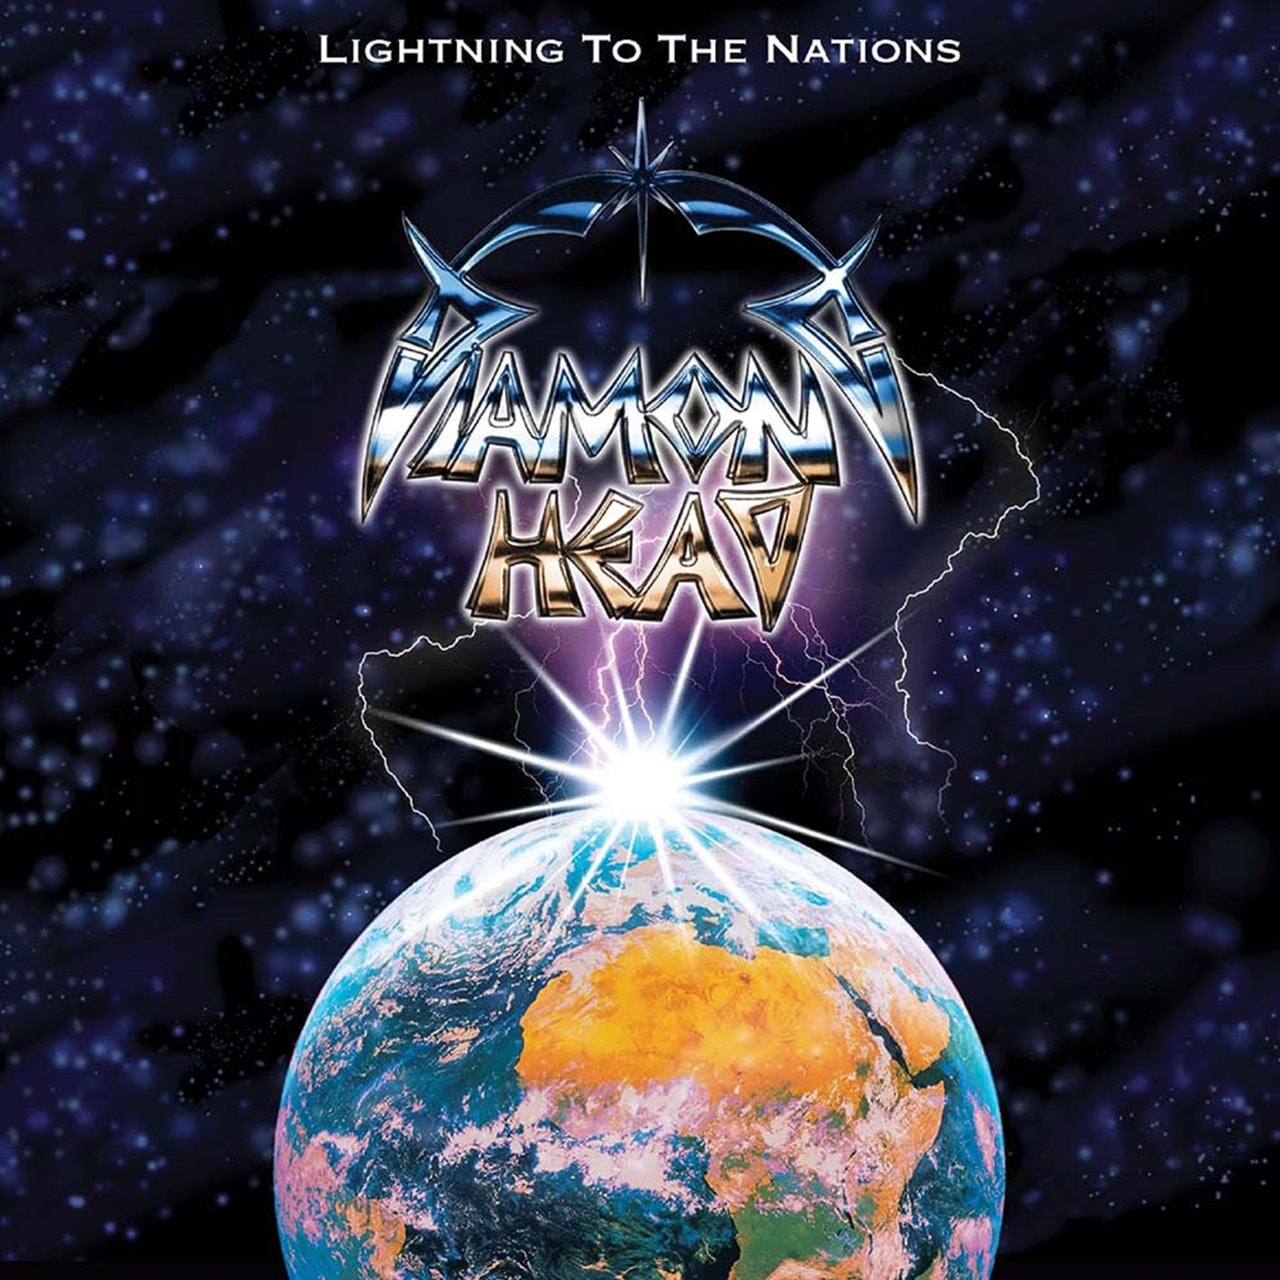 Lightning to the Nations: The White Album - 1